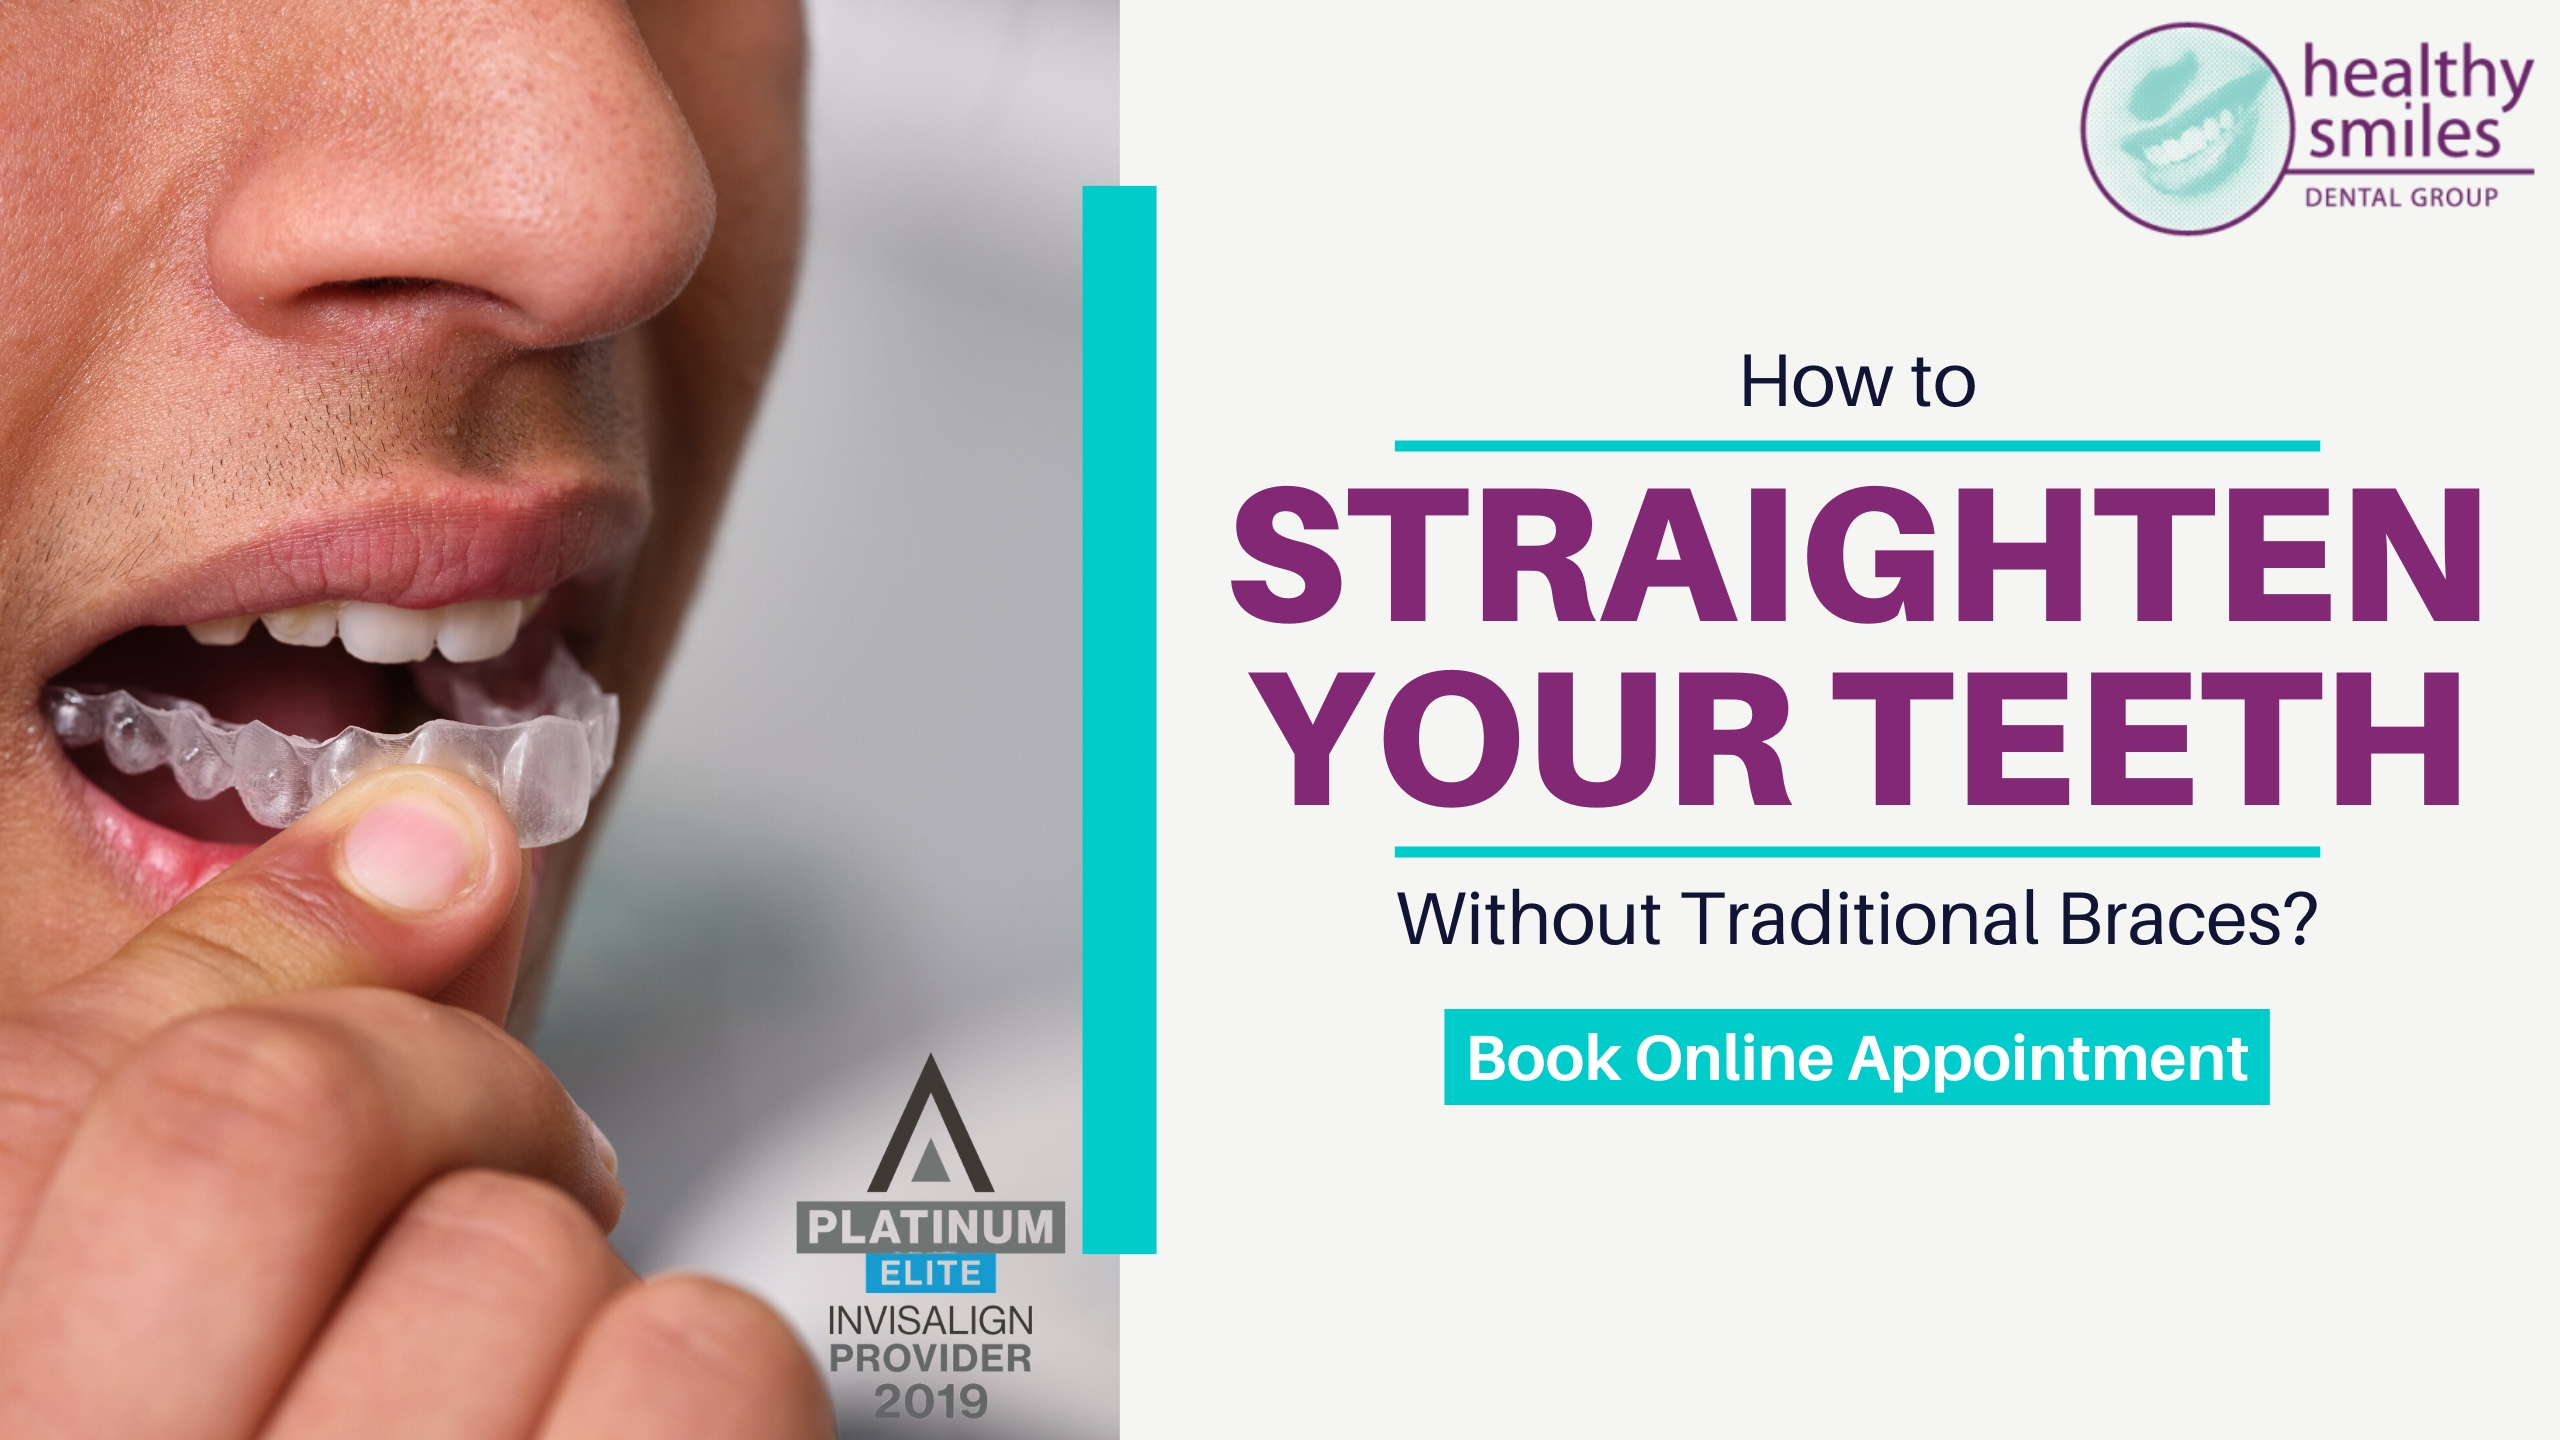 The Ways to Straighten Your Teeth Without Traditional Braces